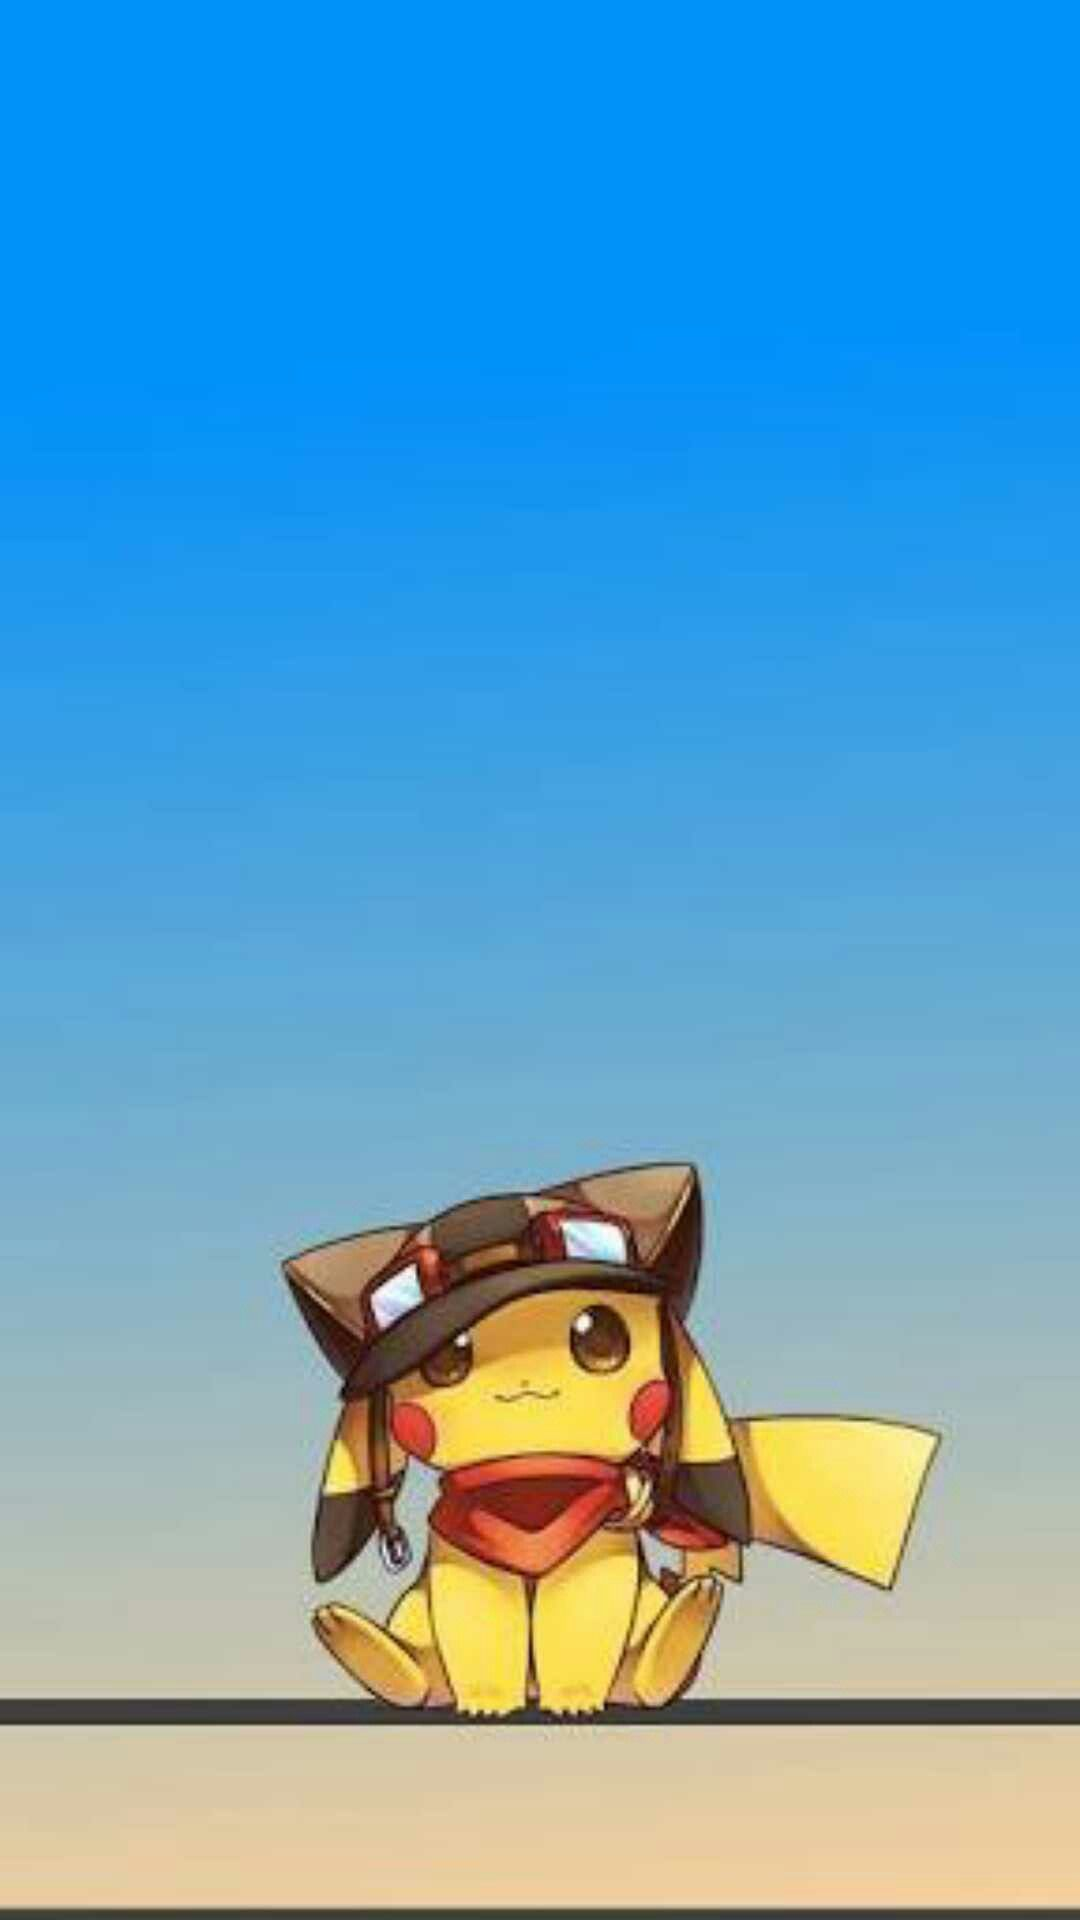 Pin By Sanai Miller On Pokemon Pikachu Wallpaper Cute Pokemon